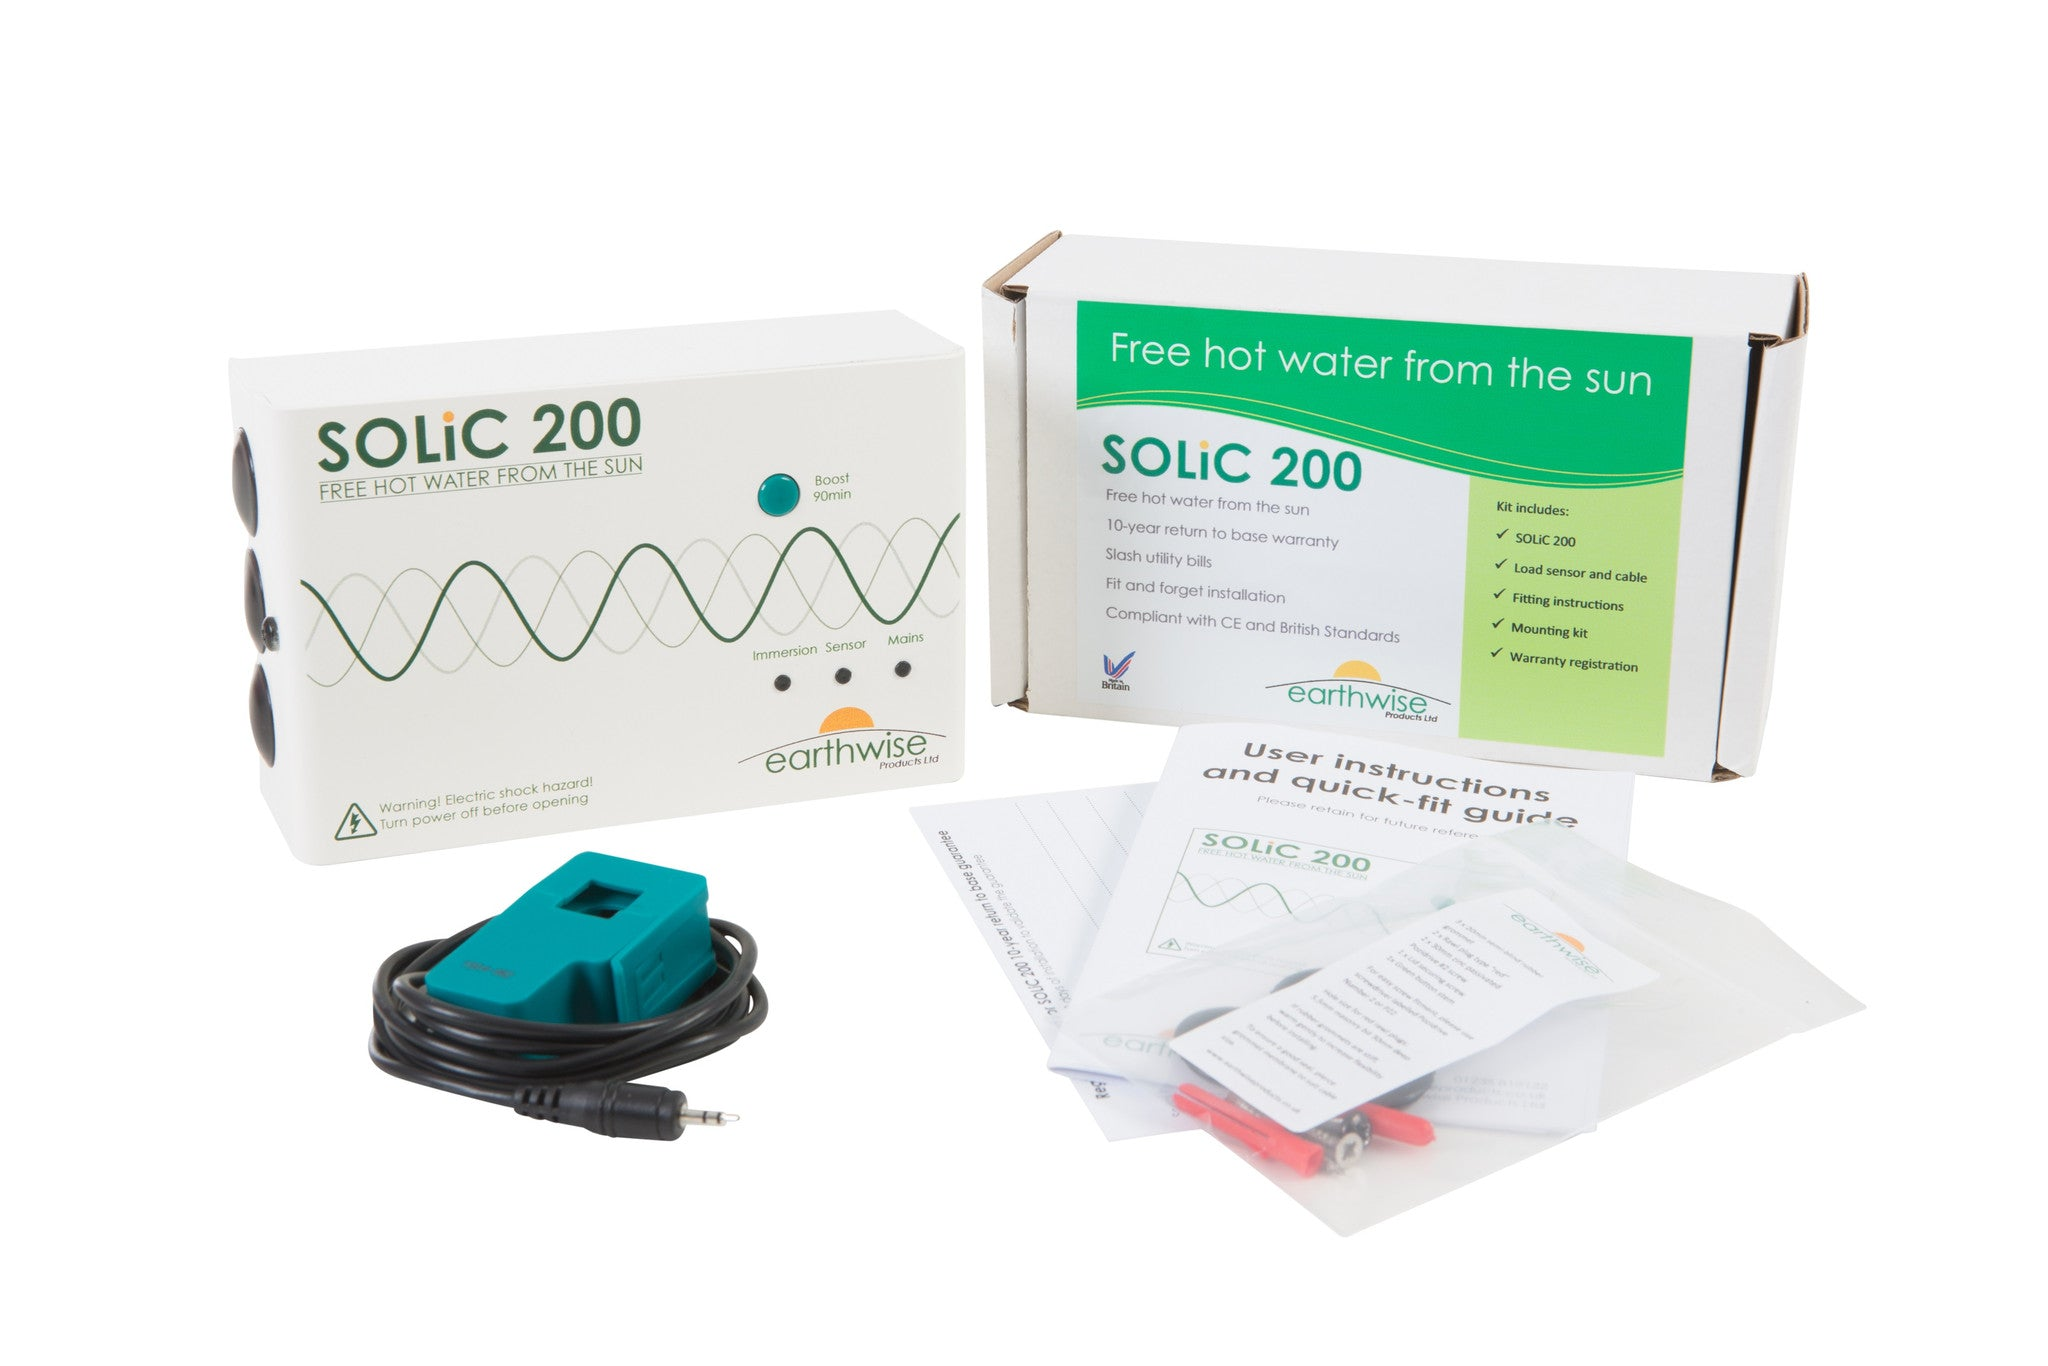 SOLiC_complete_pack?v=1466531704 solic 200 solar immersion controller ecoharmony solic 200 wiring diagram at sewacar.co